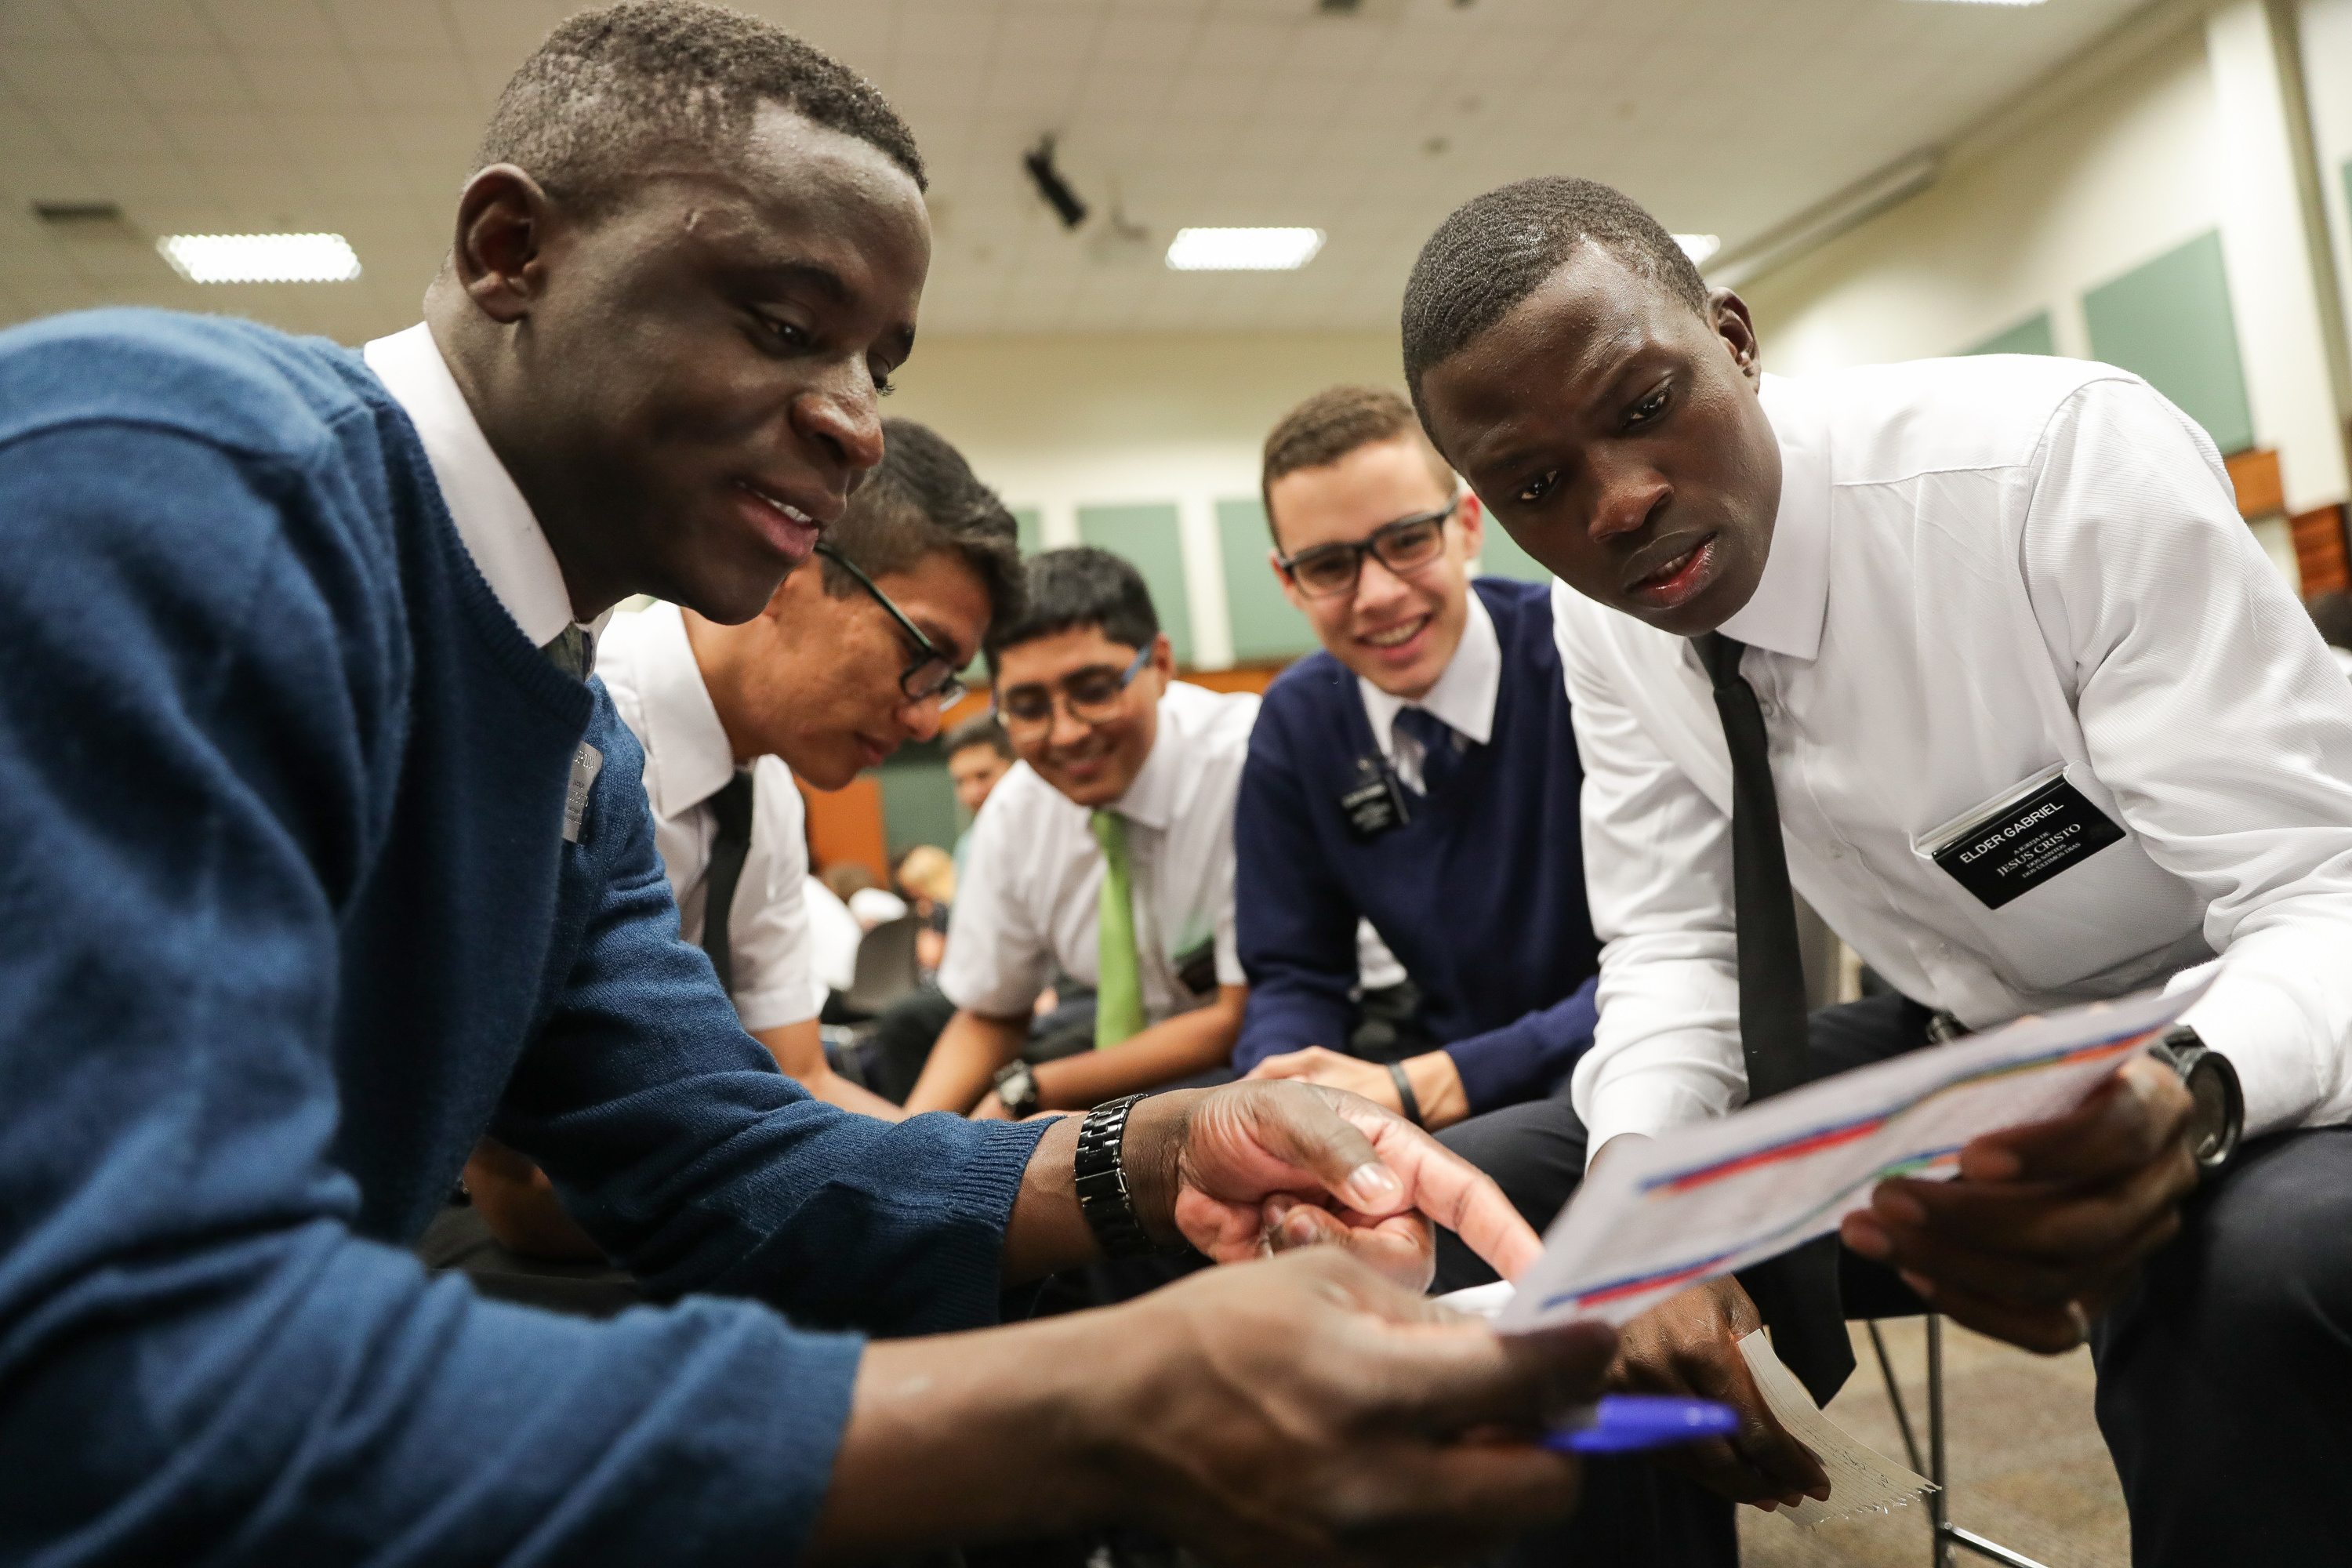 Elder Fernando Armindo Zuca, left, and Elder Jorge Gabriel, right, work with other missionaries on a lesson at the Missionary Training Center in São Paulo, Brazil on Thursday, May 24, 2018.